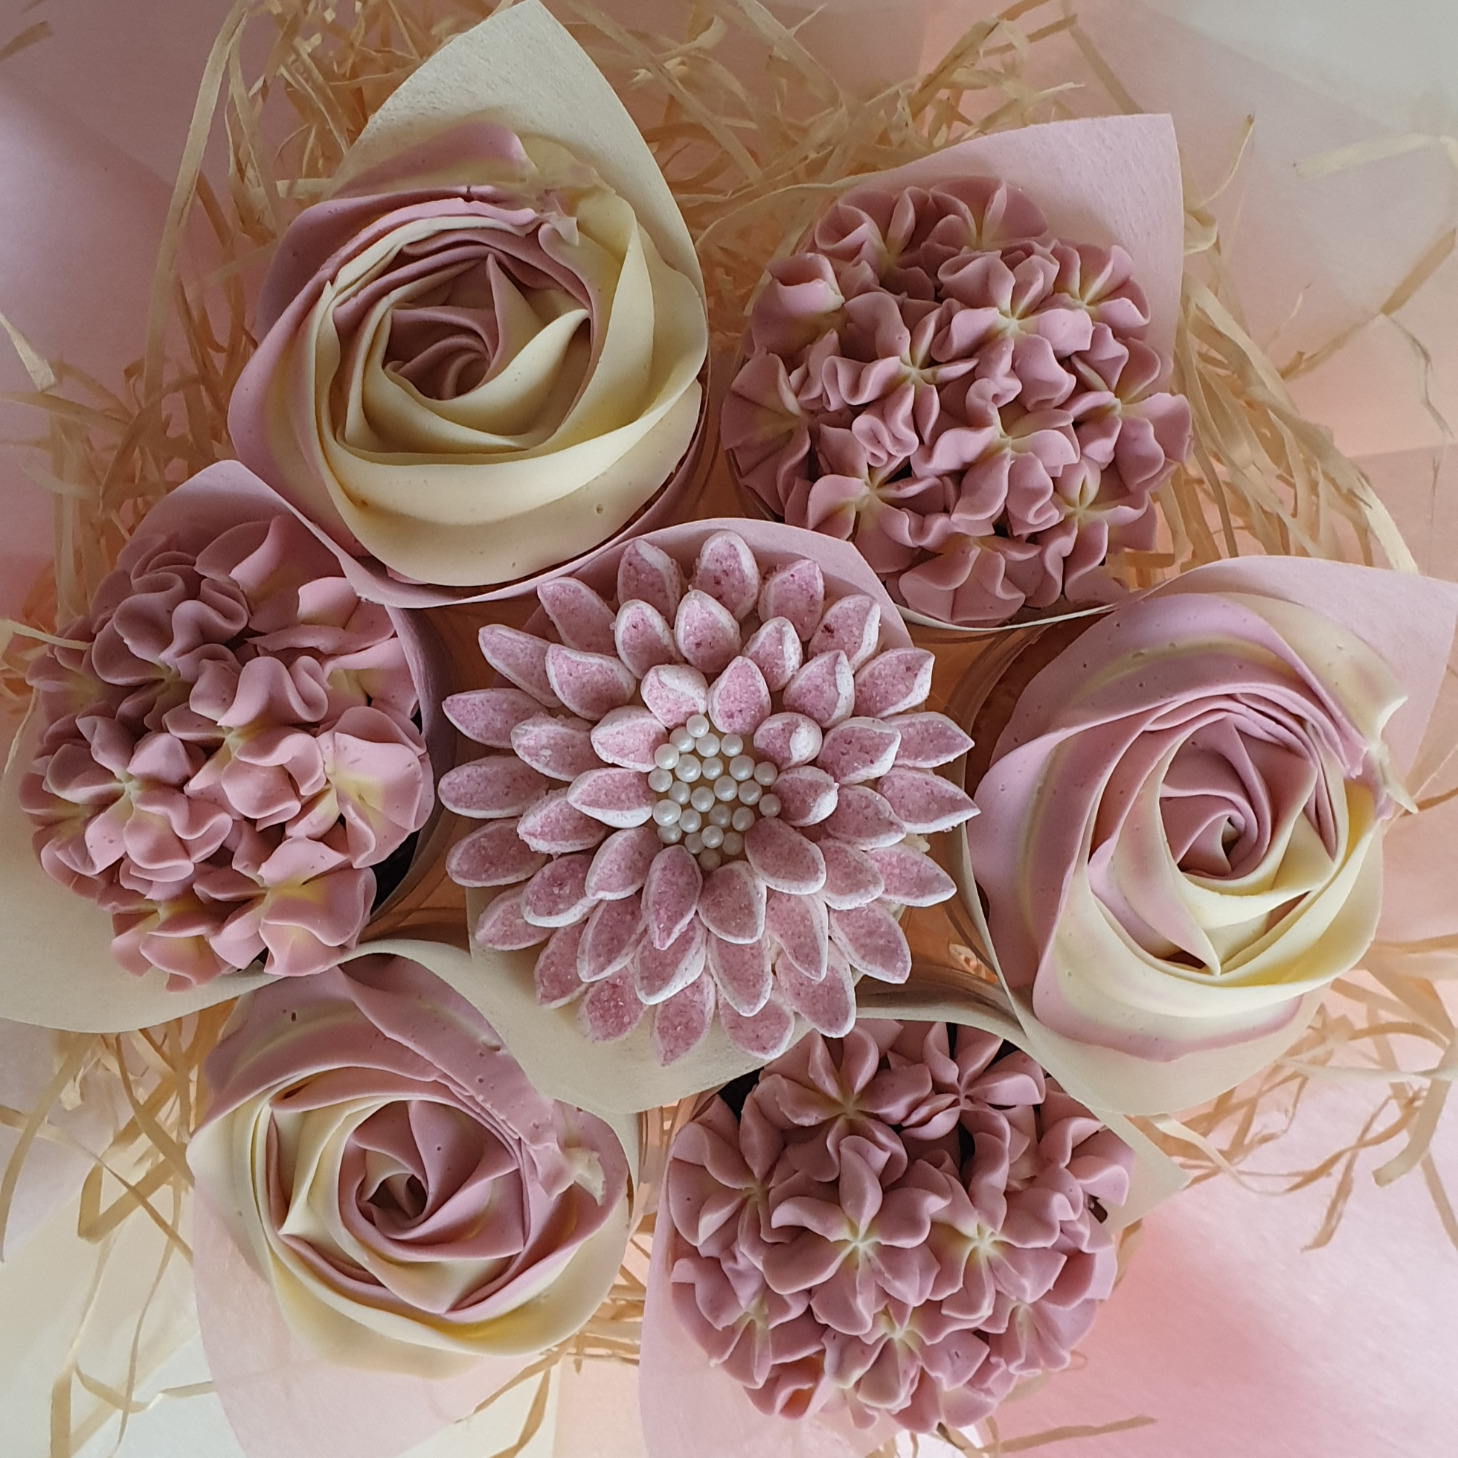 Mixed Blooms - Pink & Cream